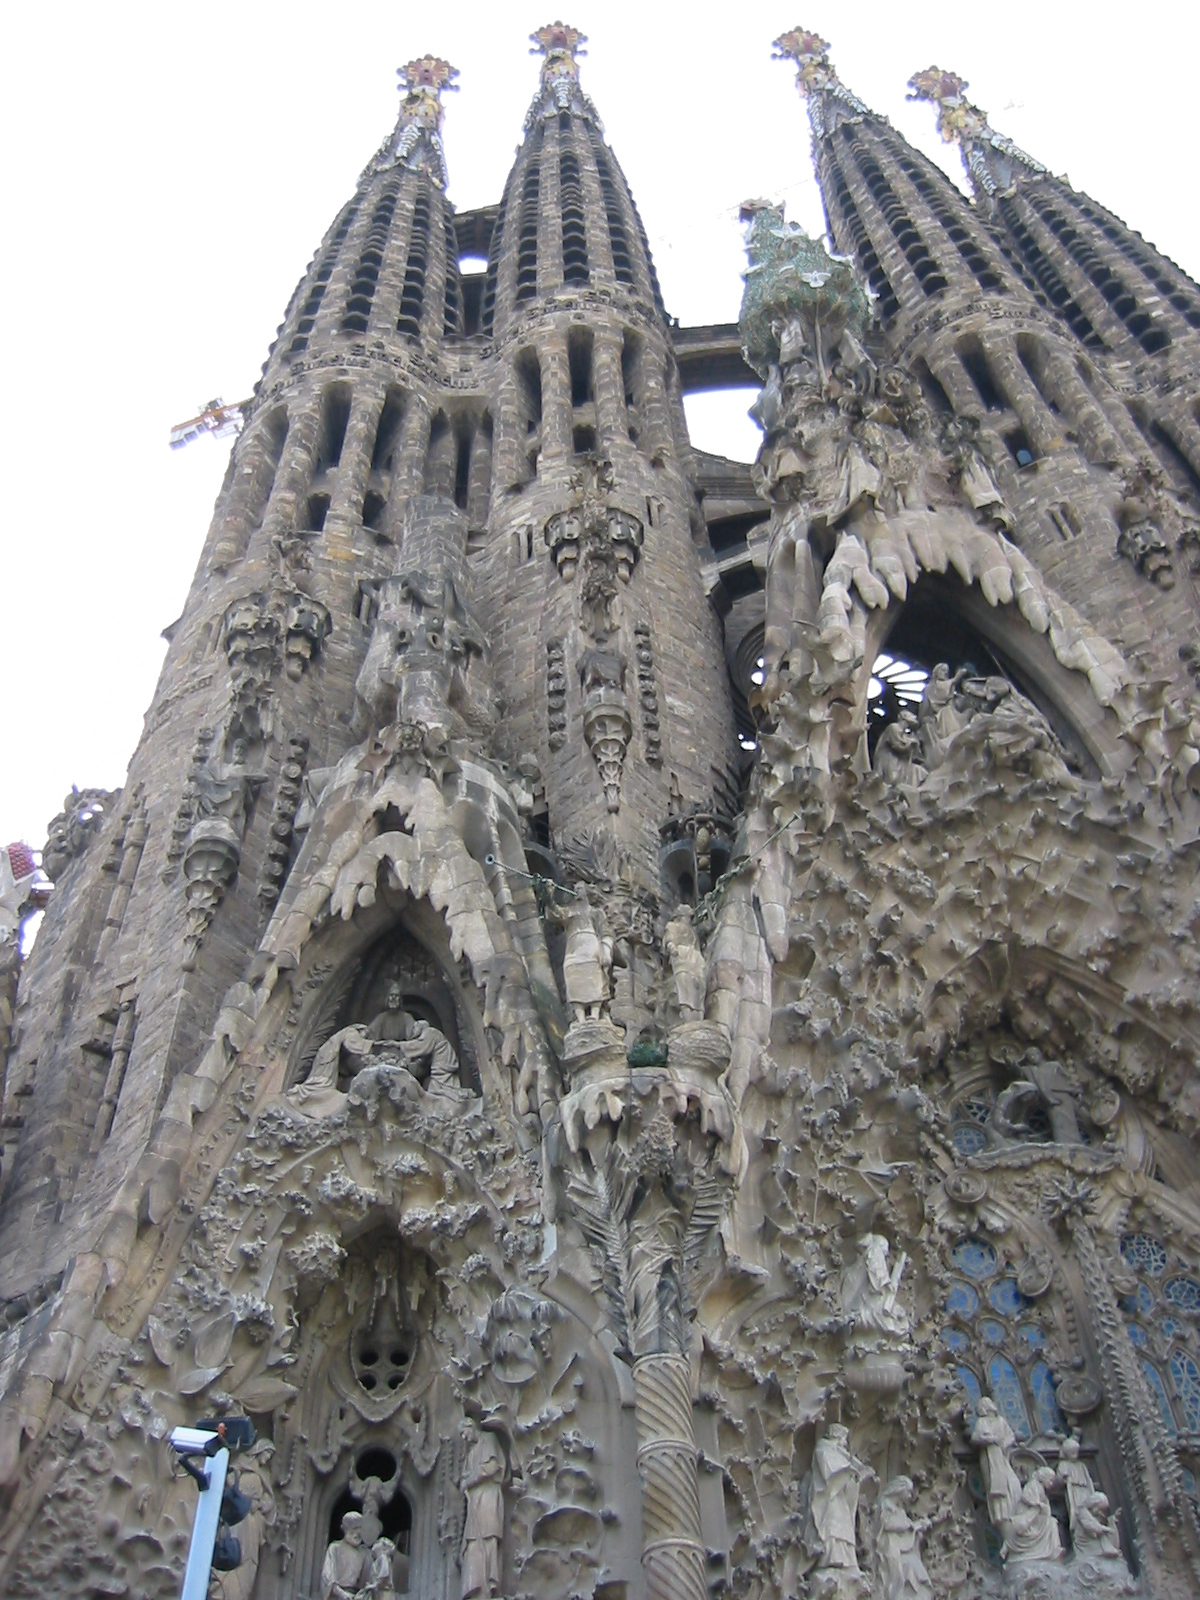 architecture exteriors sagradafamilia spain barcelona cathedral tower towers ornamented gaudi